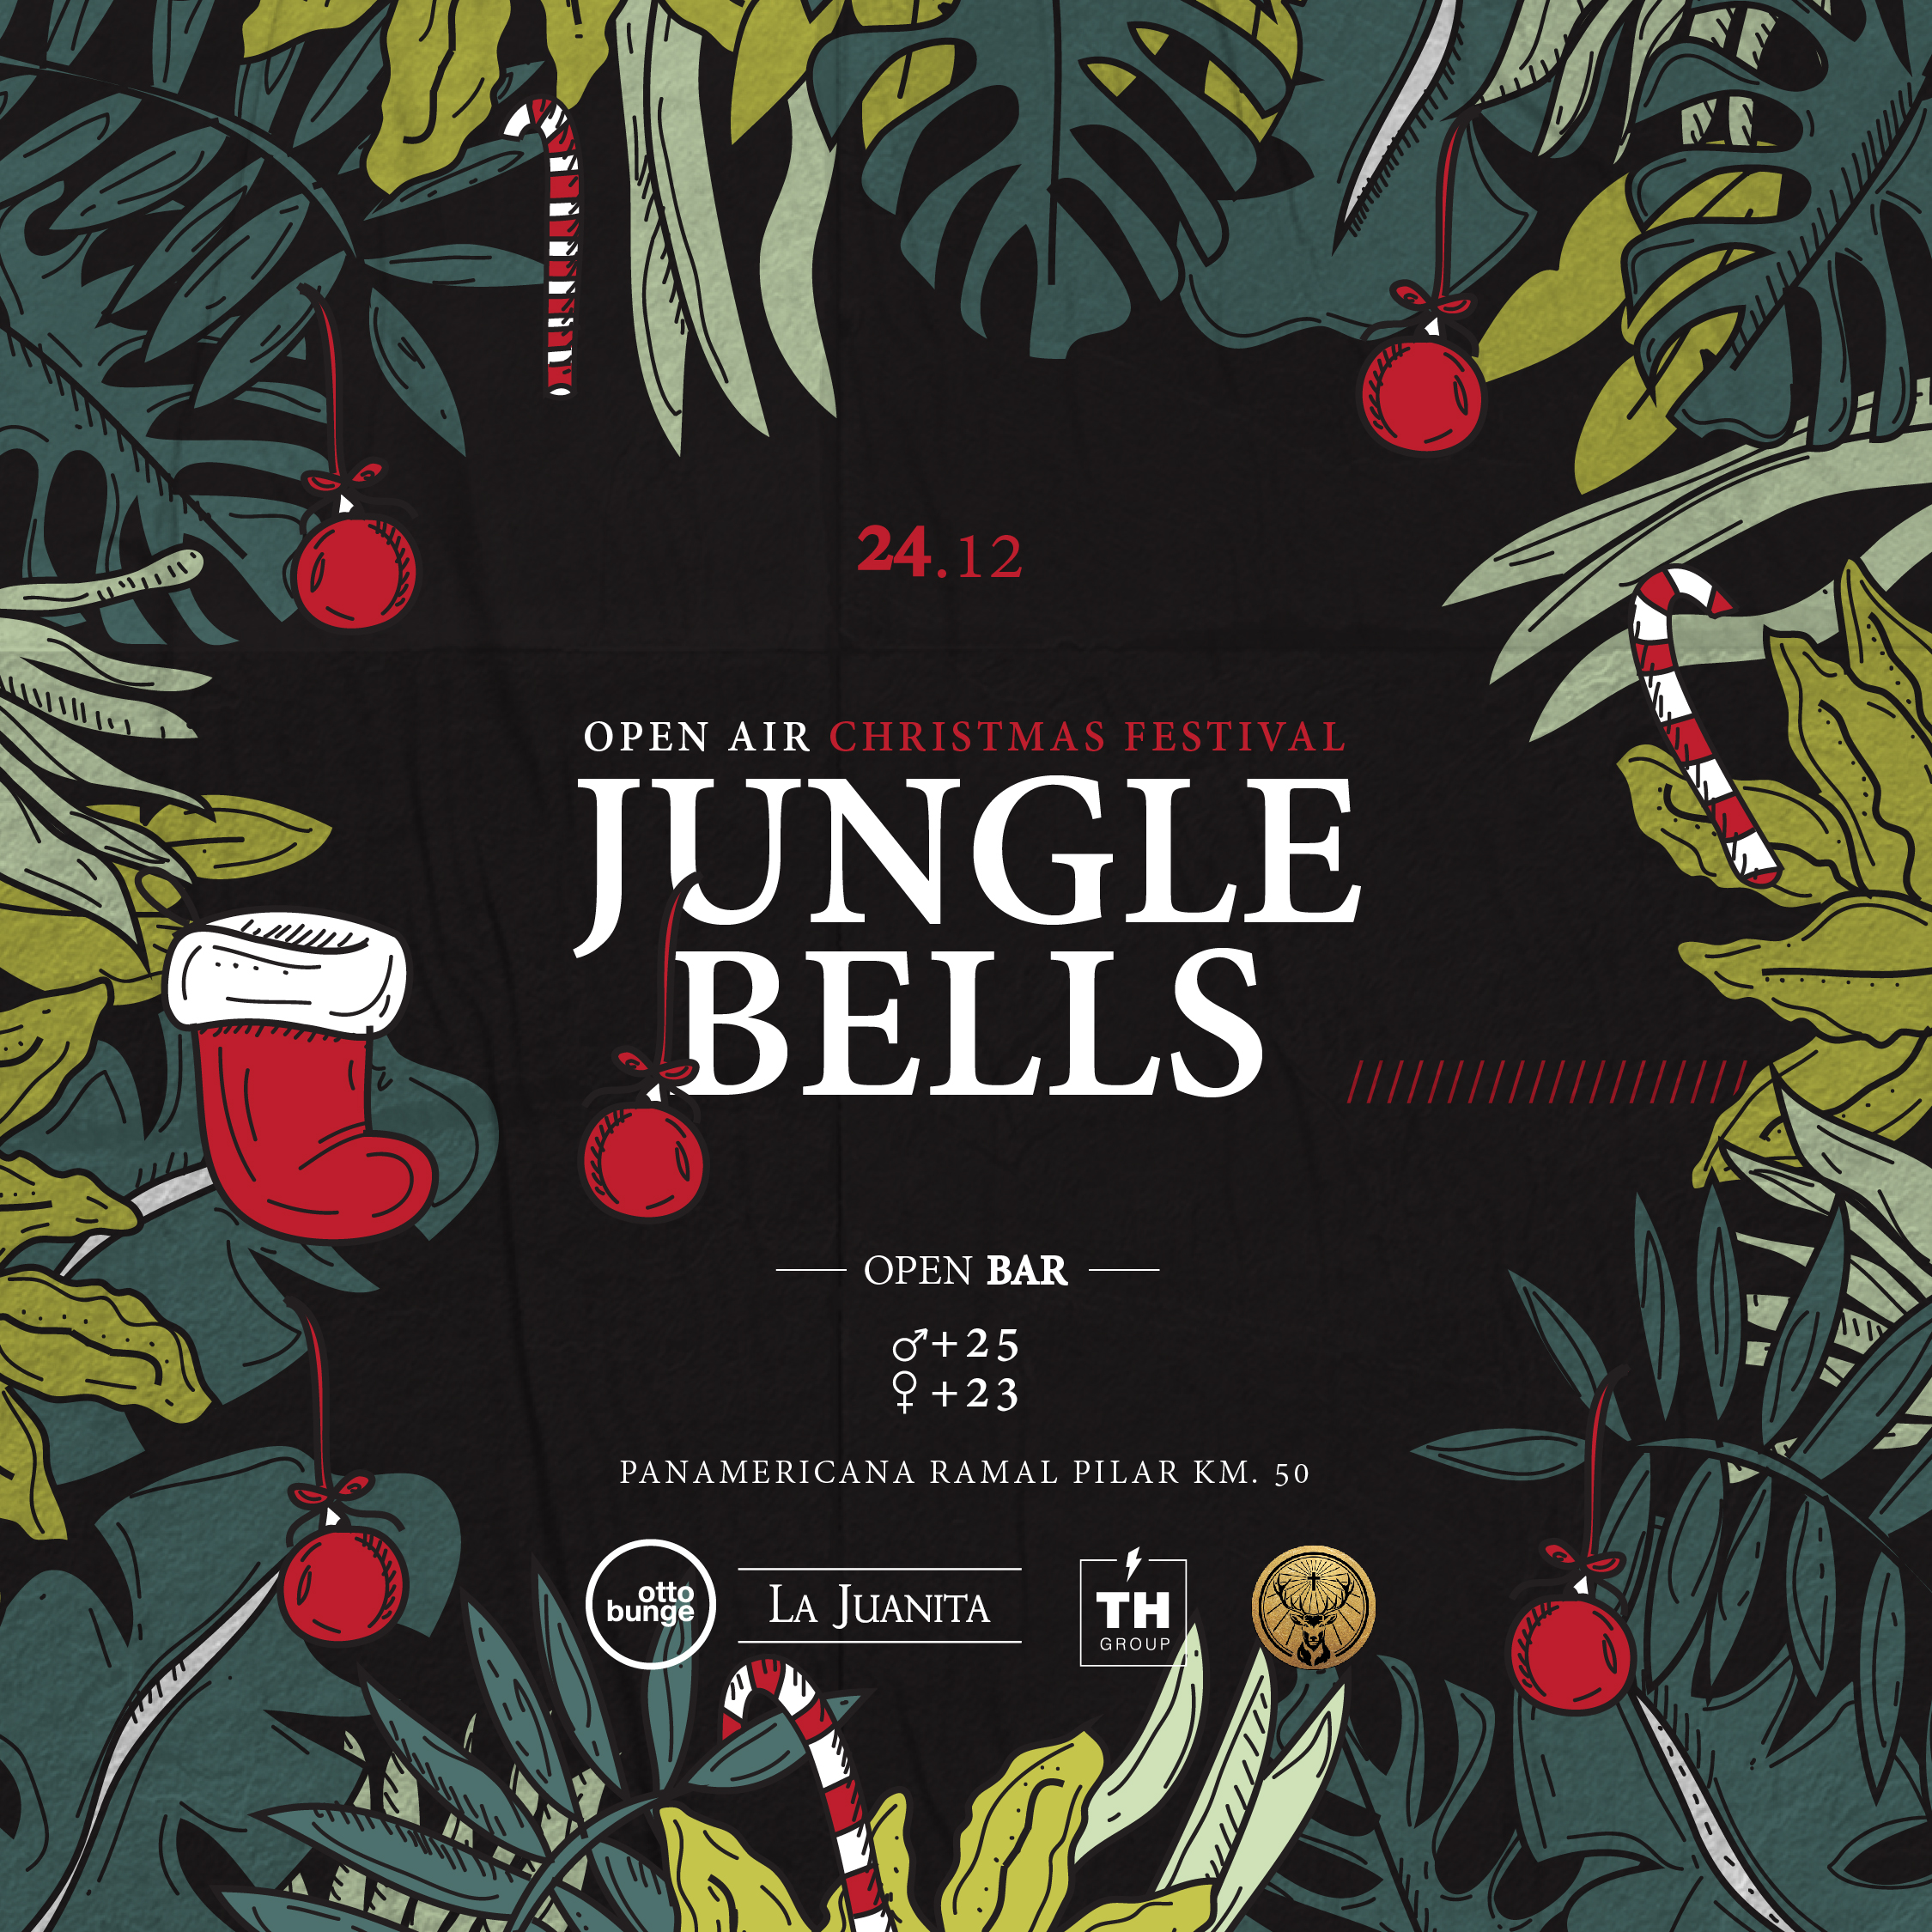 Jungle Bells Pilar